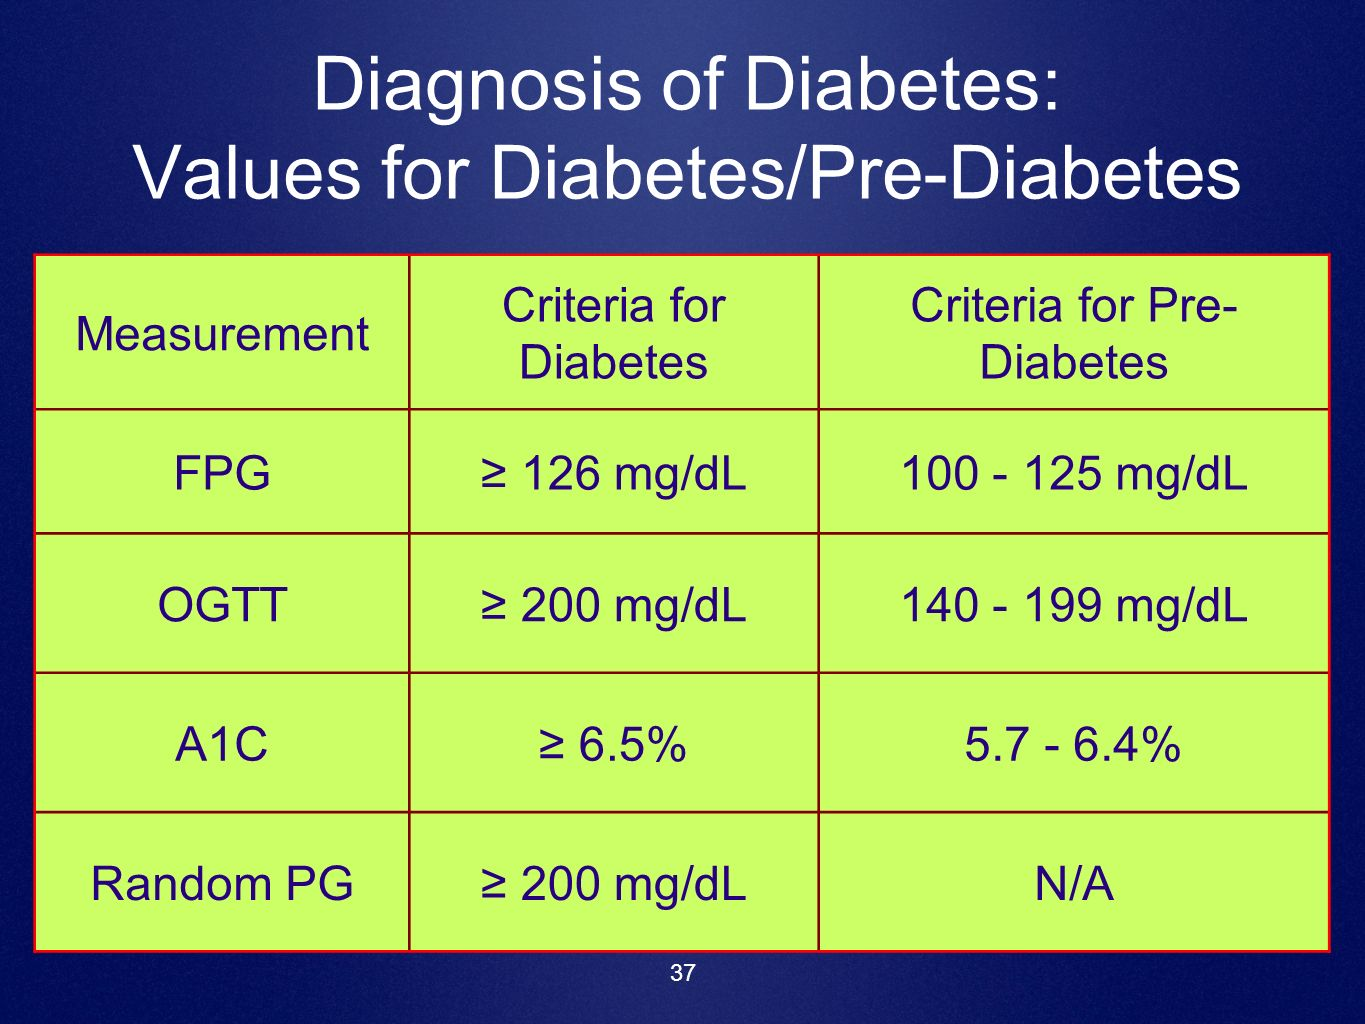 Diagnosis of Diabetes: Values for Diabetes/Pre-Diabetes